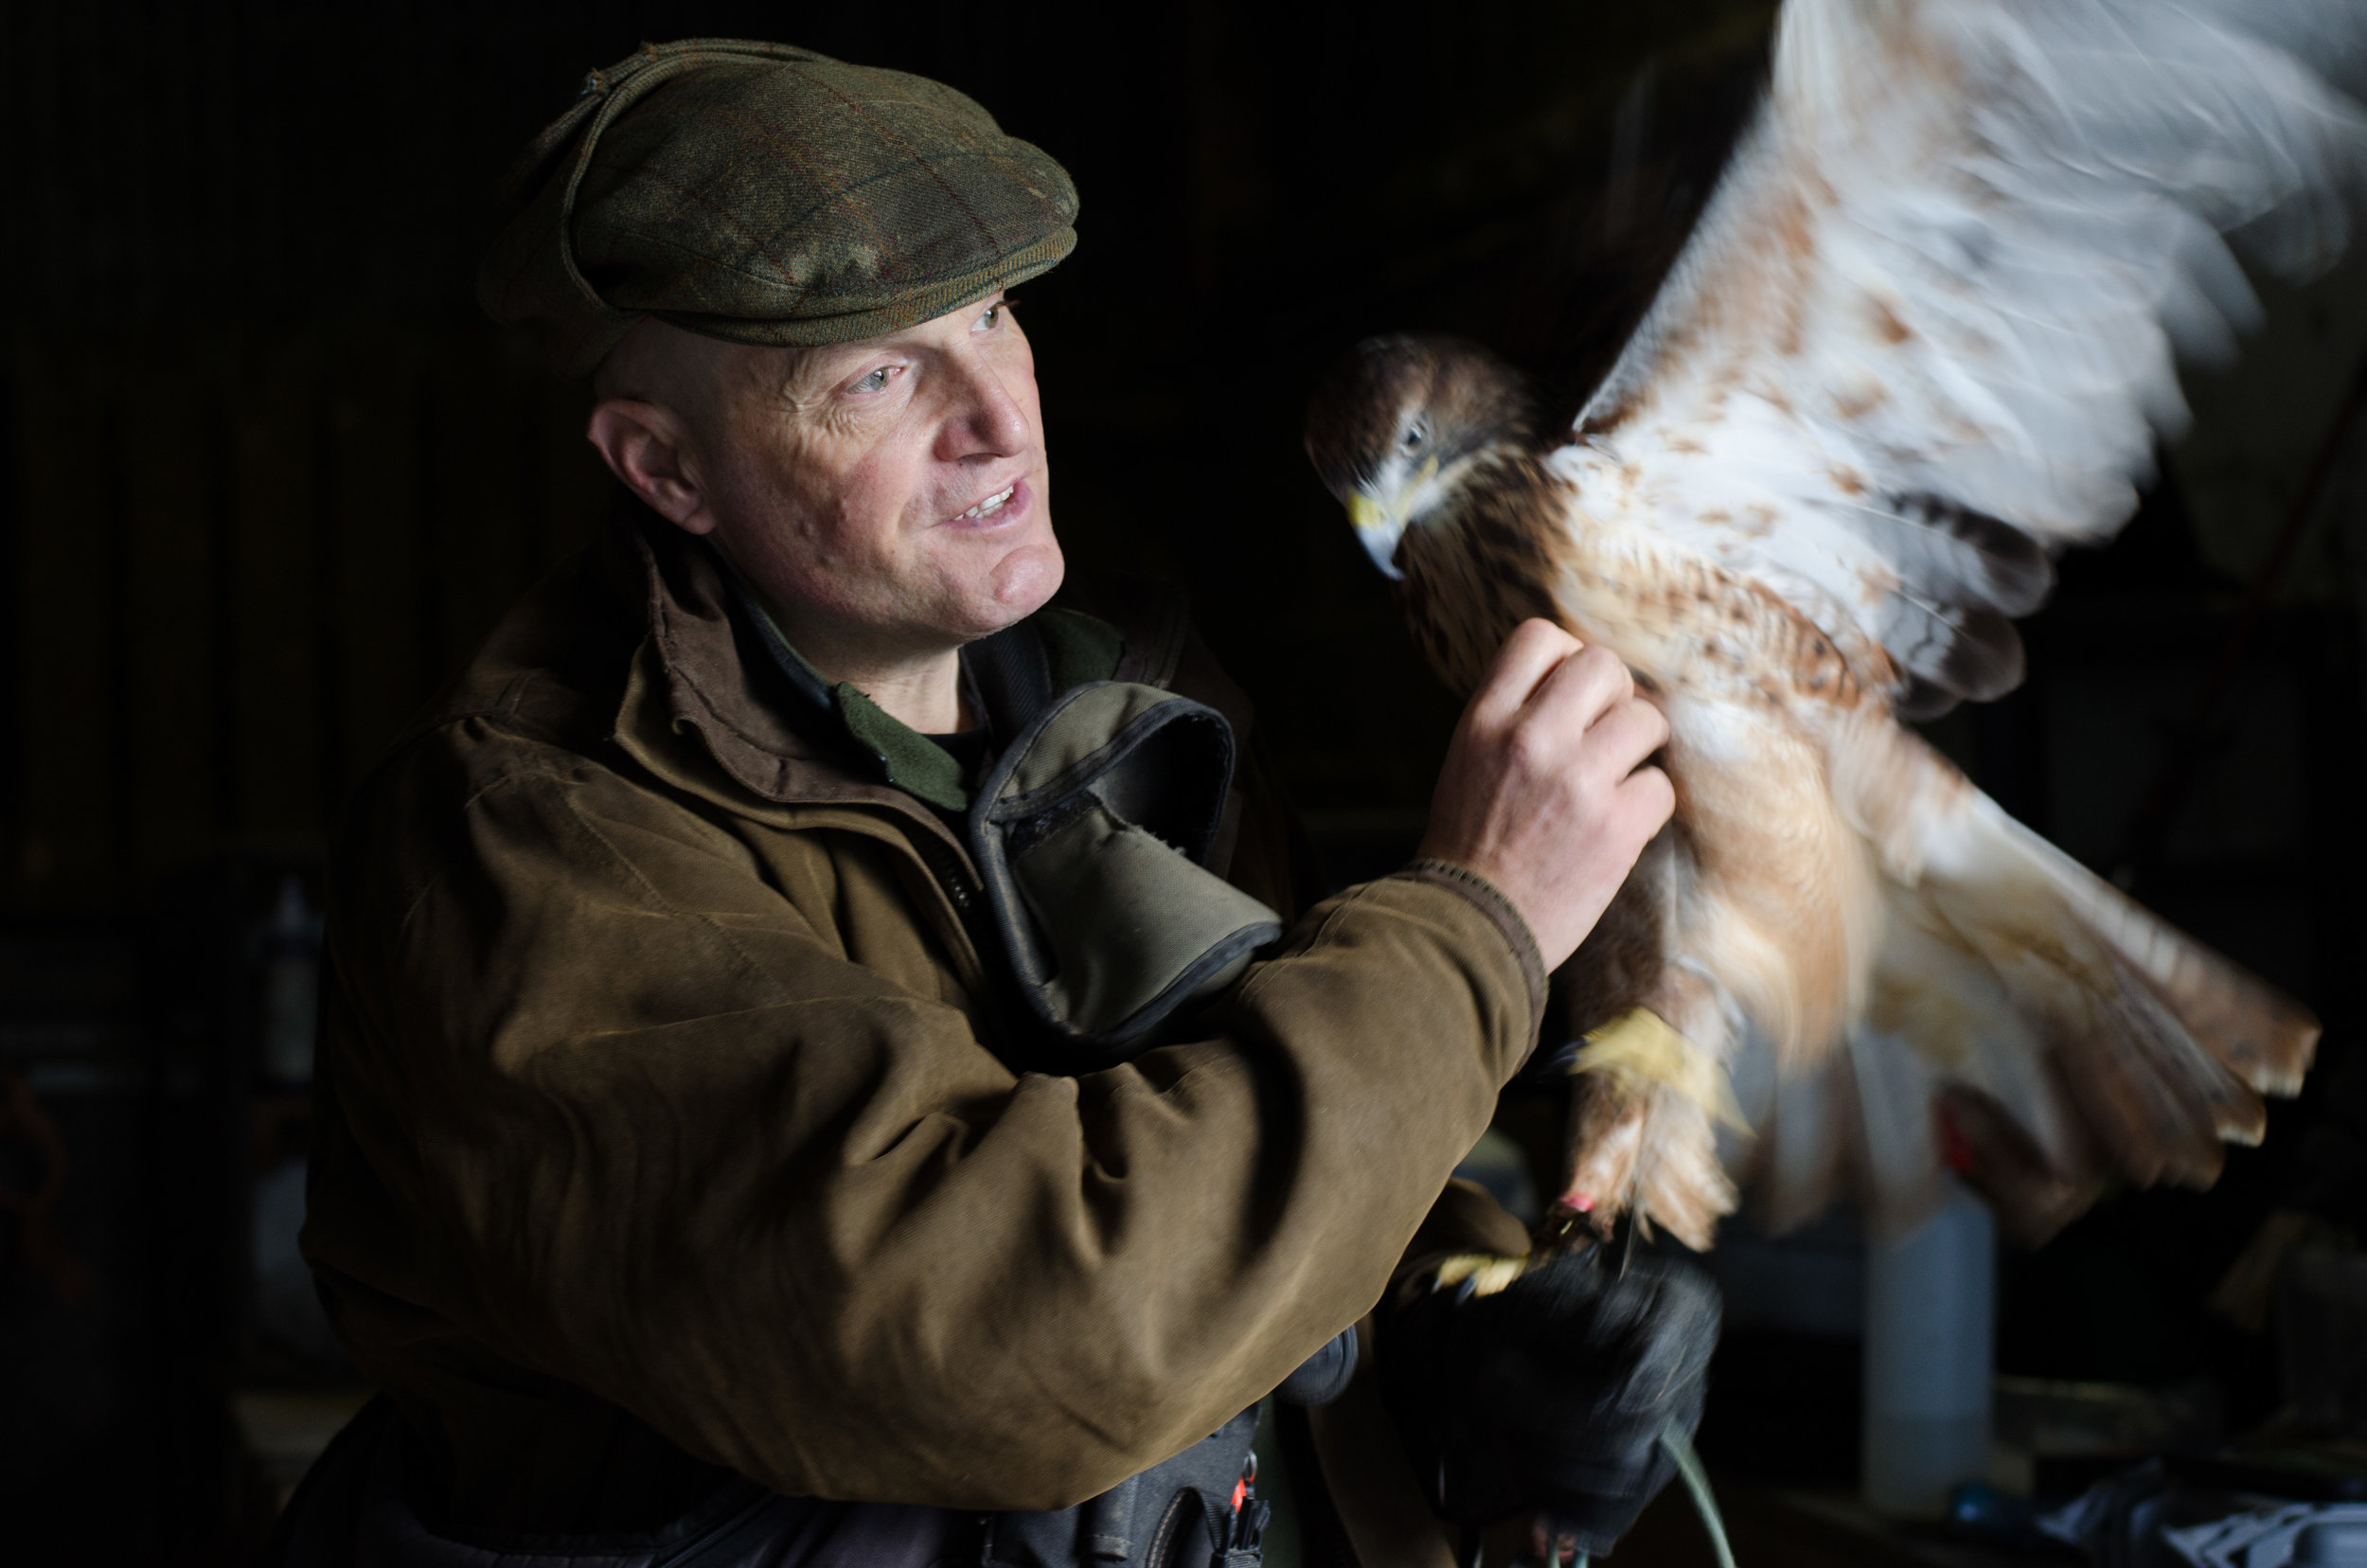 Martin Whitley of Dartmoor Hawking, weighing his birds before choosing which to fly that day.